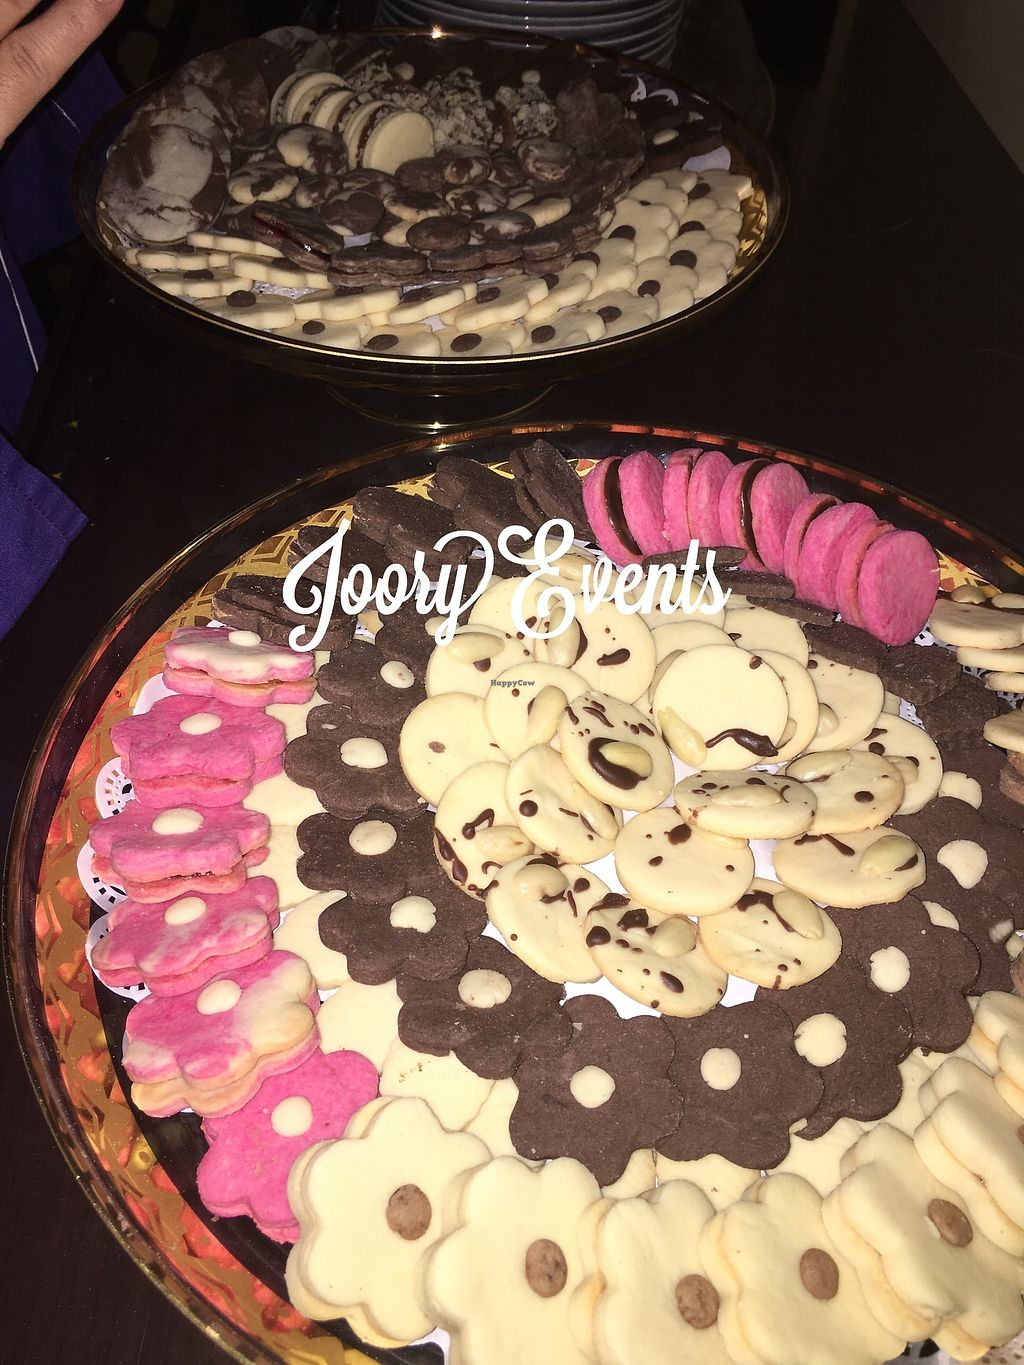 "Photo of CLOSED: JooryEvents  by <a href=""/members/profile/NoorAdel"">NoorAdel</a> <br/>Vegan petite Fours biscuits, some are topped with dark chocolate & almonds <br/> January 24, 2018  - <a href='/contact/abuse/image/110325/350571'>Report</a>"